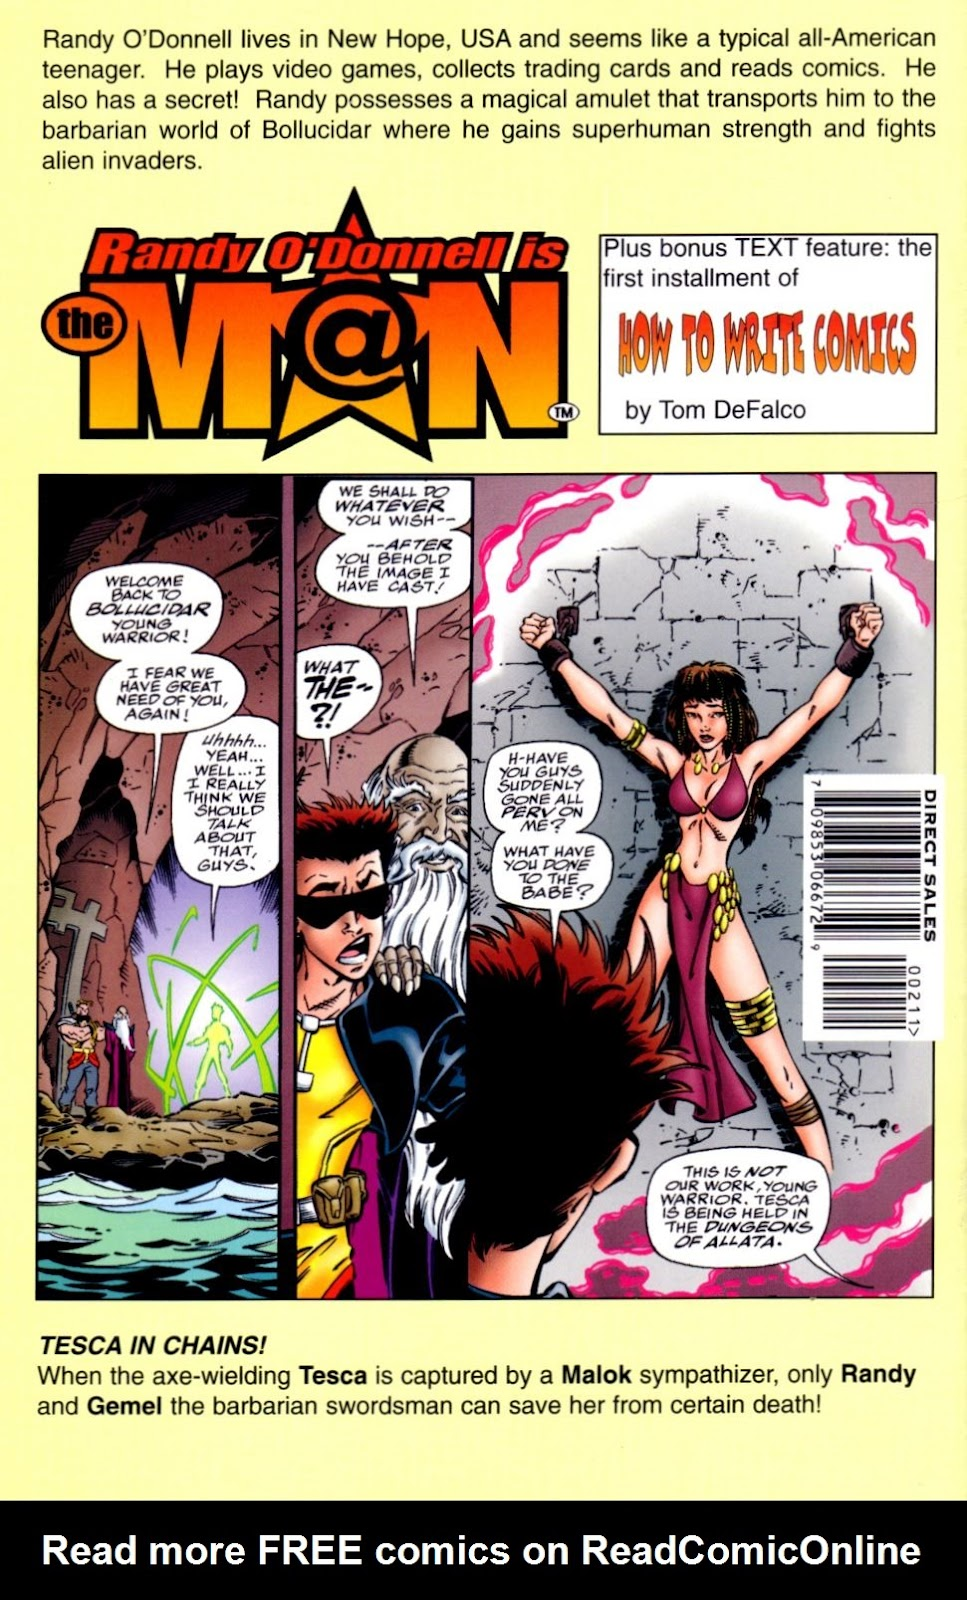 Read online Randy O'Donnell is The M@N comic -  Issue #2 - 31